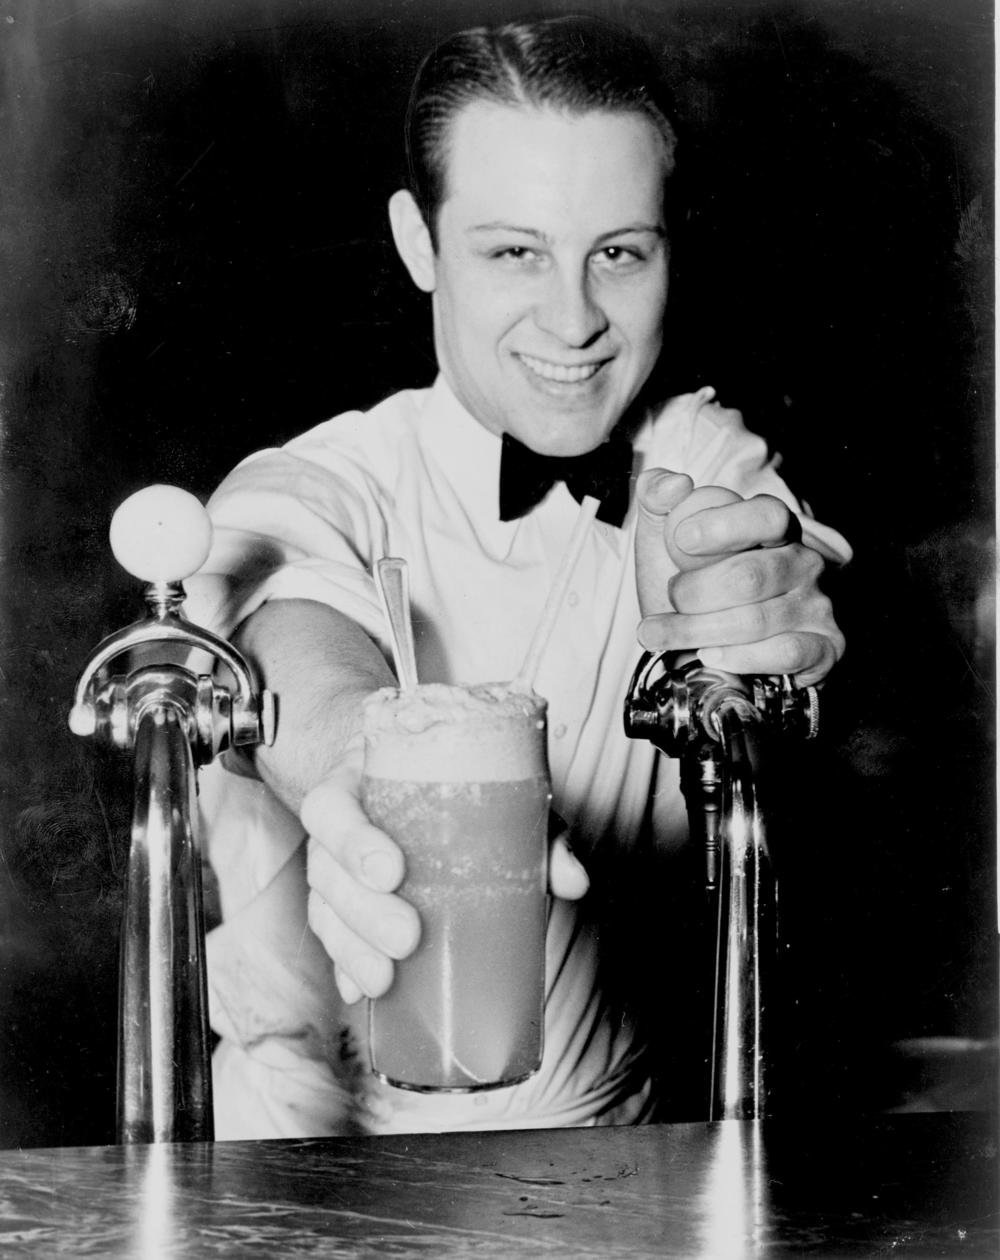 A Boston Cooler or Vernor's Float, being served with a smile by Eddie Skinks of Detroit's little known corrupt soda fountain gang. Not tipping Eddie proved to be a mistake.